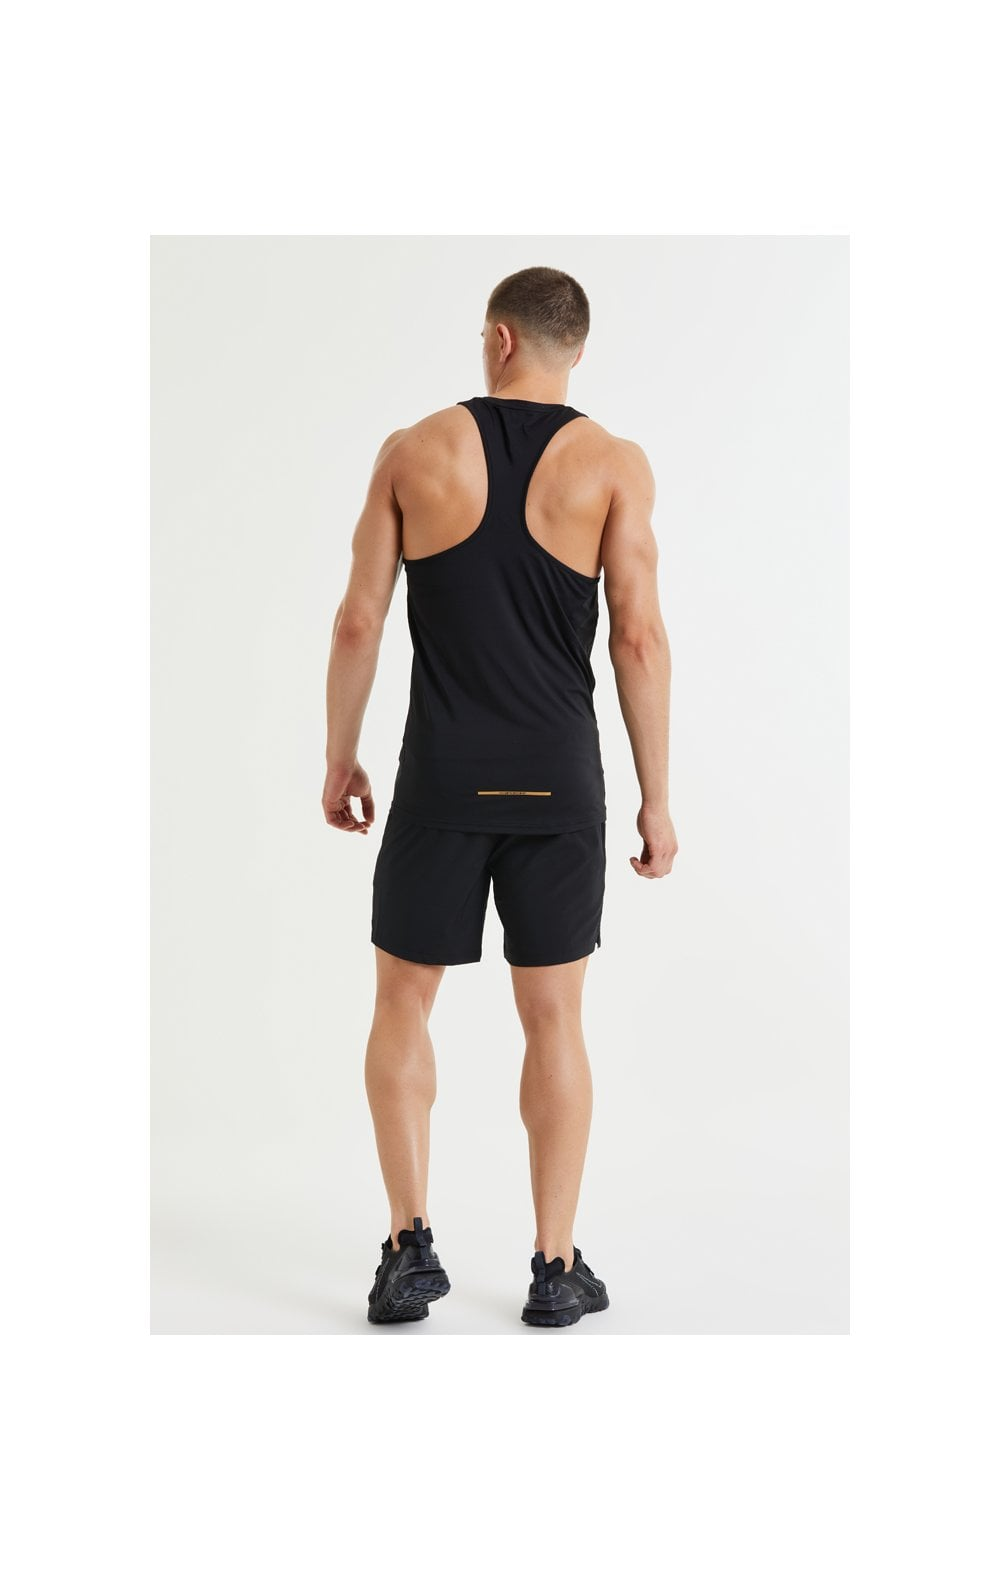 Load image into Gallery viewer, SikSilk Pressure Vest - Black (6)